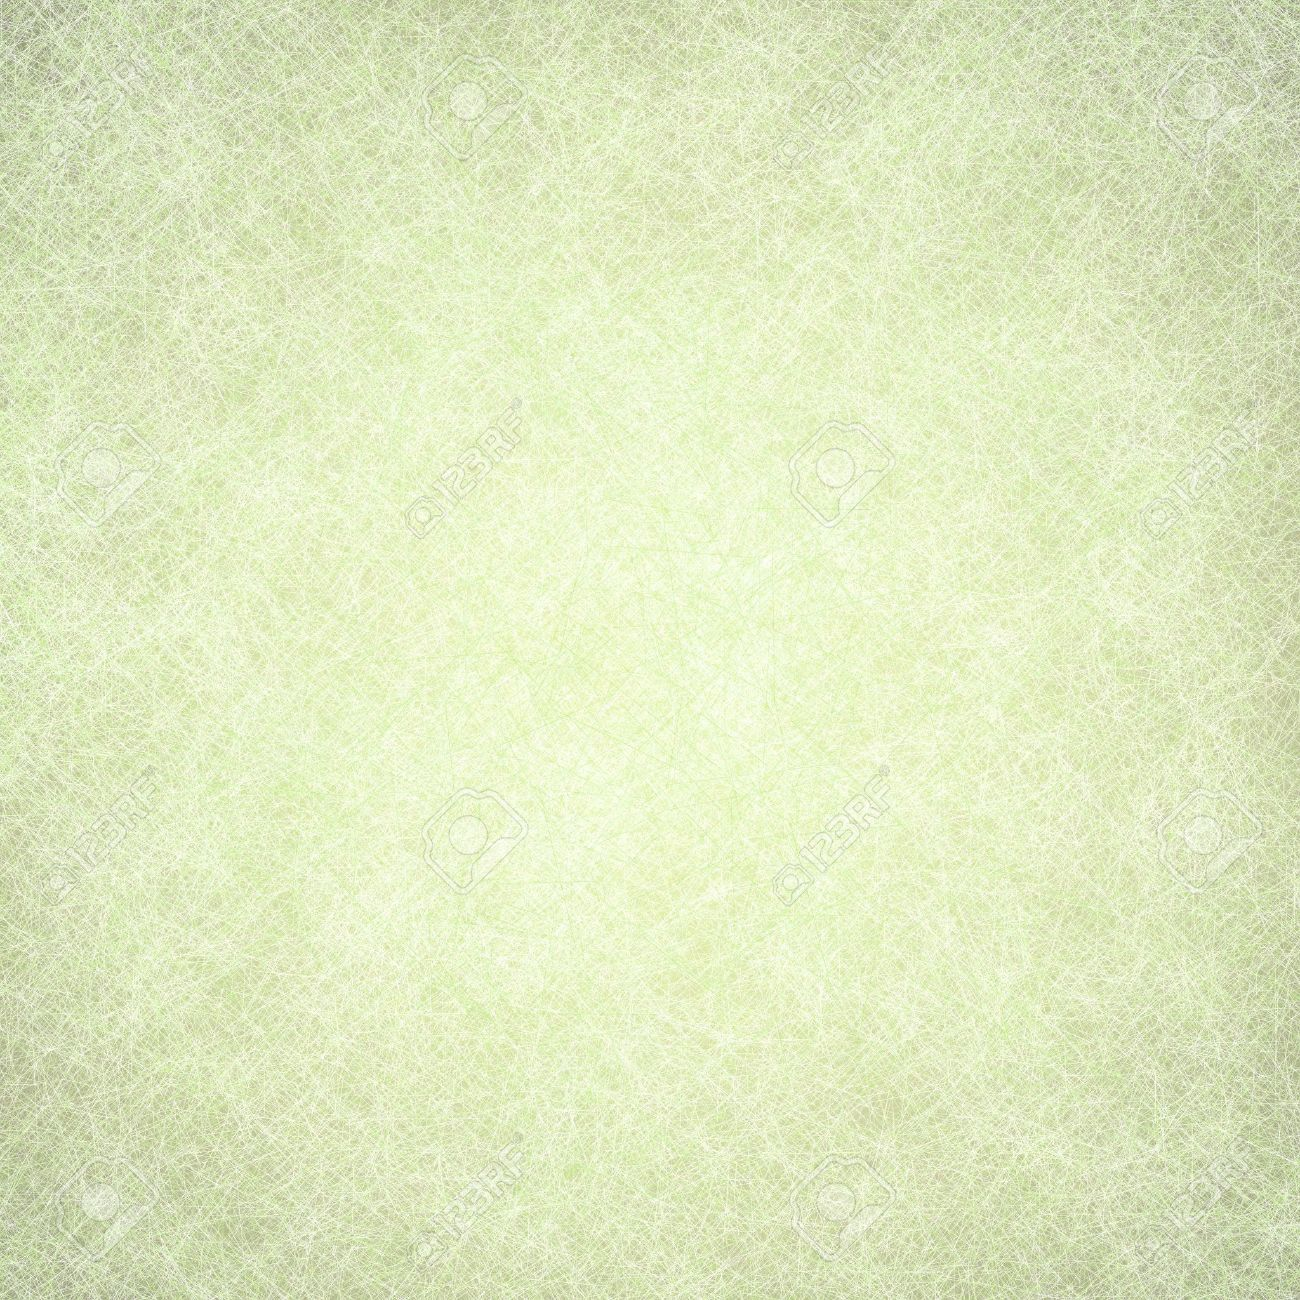 Solid Green Background Texture, Light Pastel Green Color And.. Stock ...